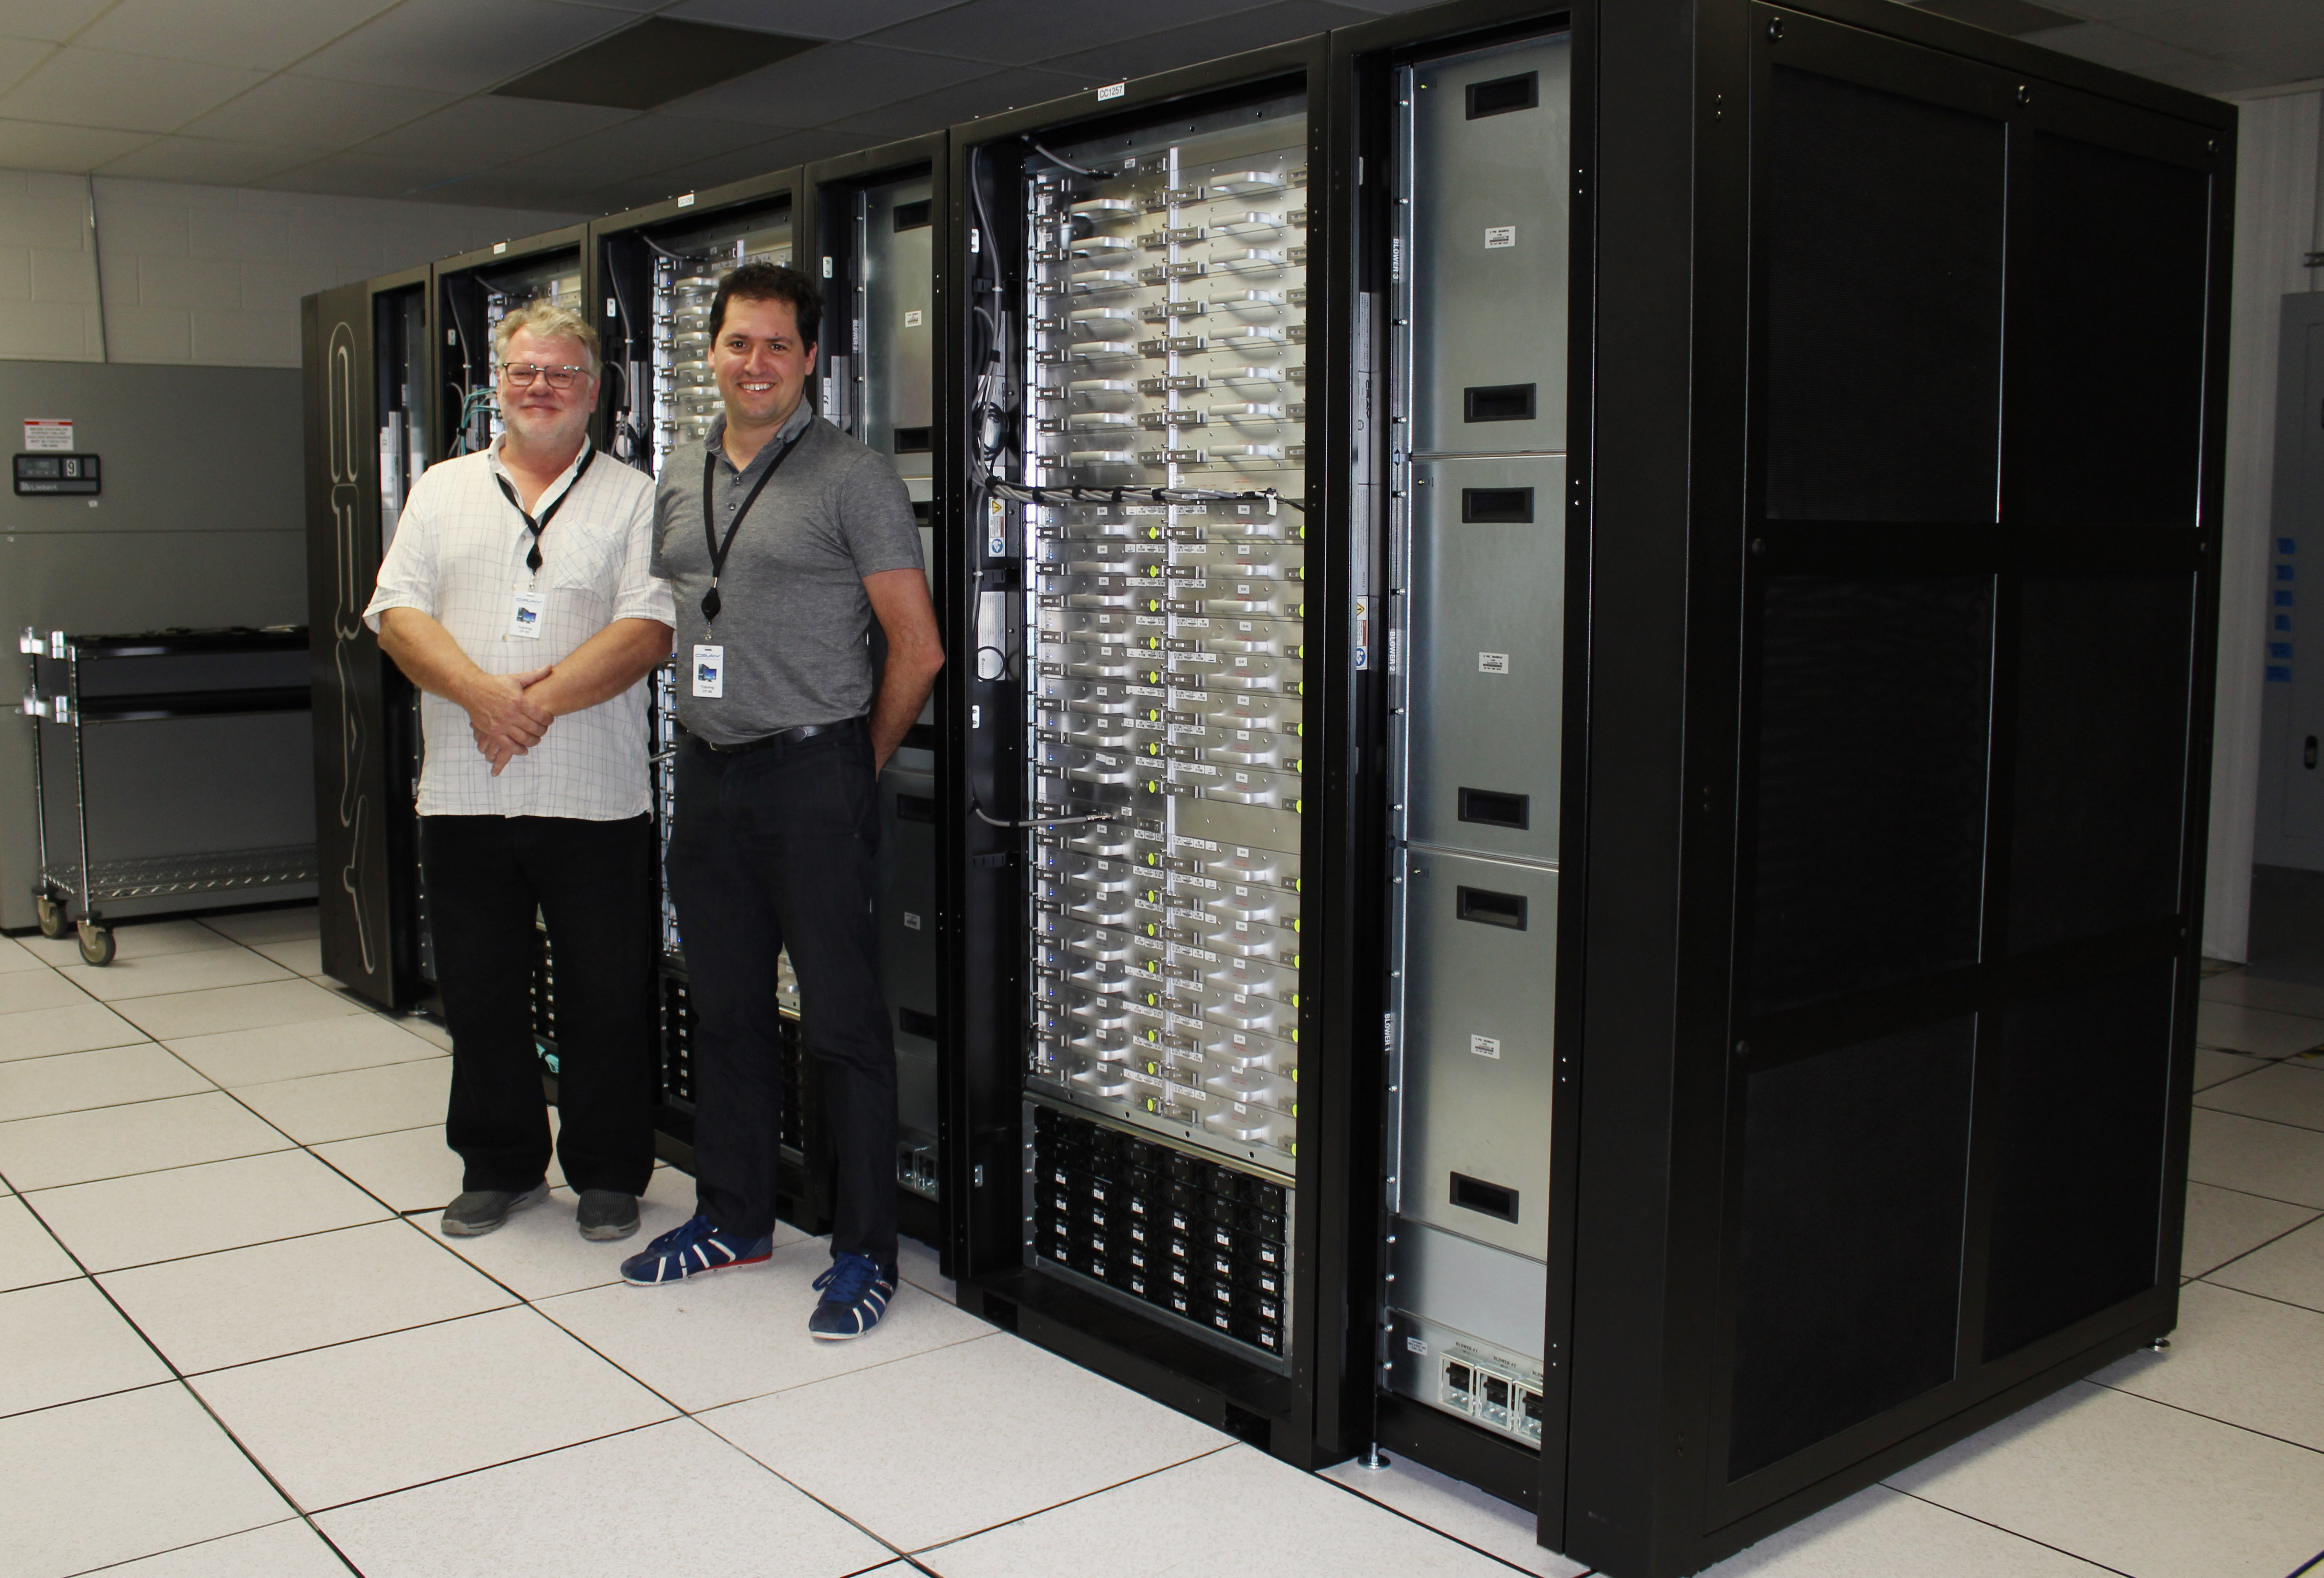 NeSI's Fabrice Cantos and Greg Hall at the Cray factory checking in on our XC50